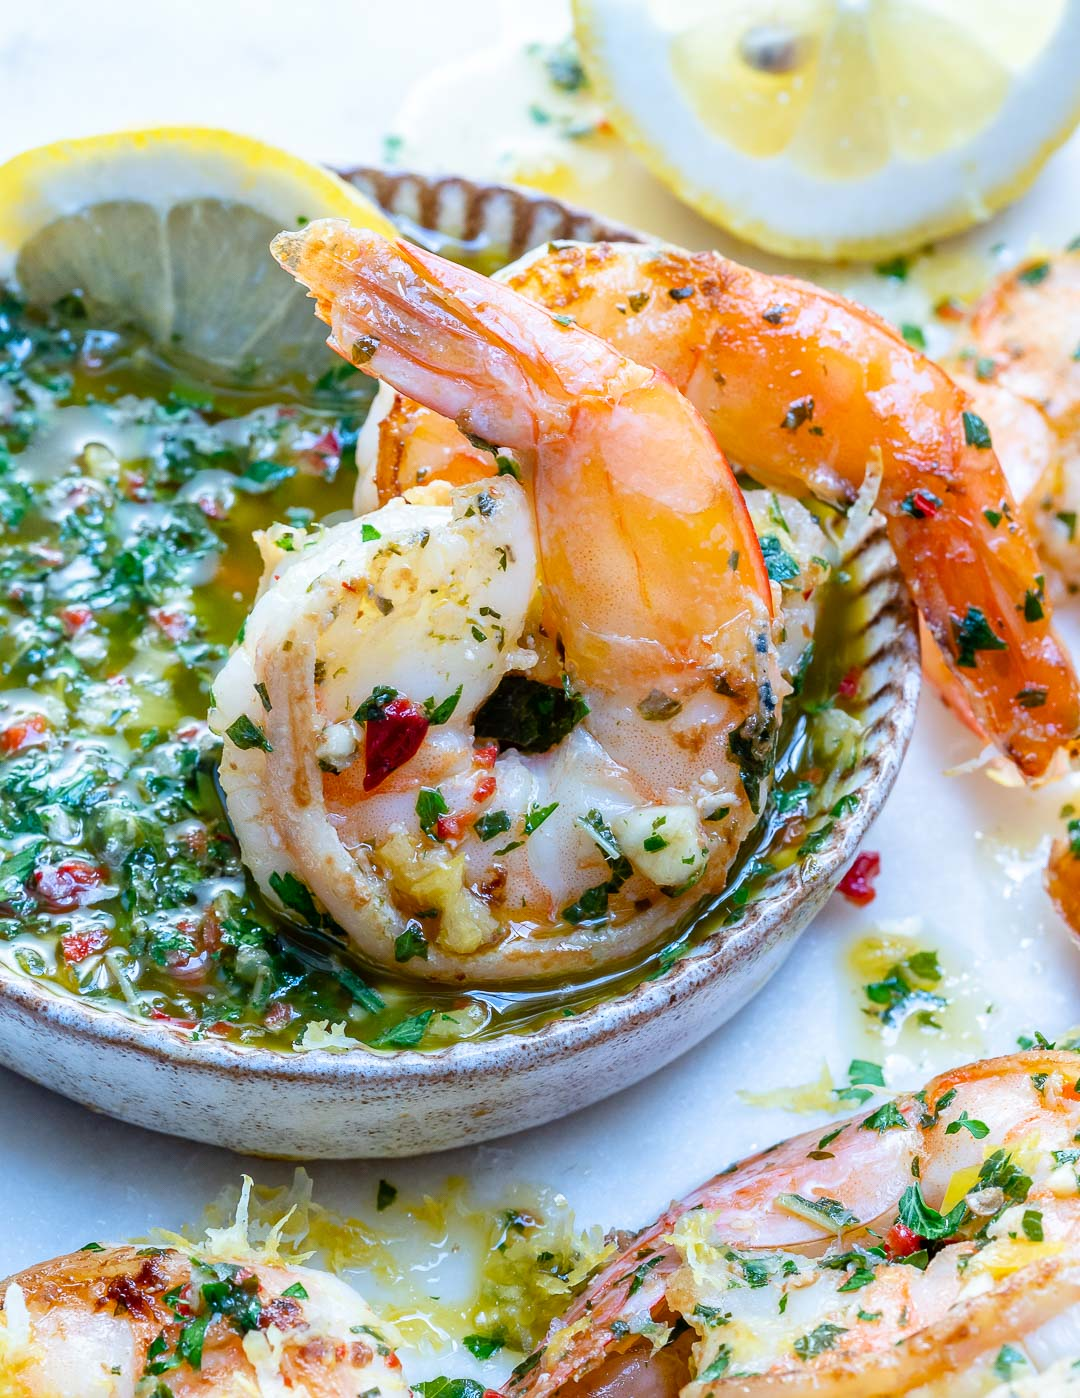 This Super Tasty Chimichurri Shrimp is Ready in Just 15 Minutes!